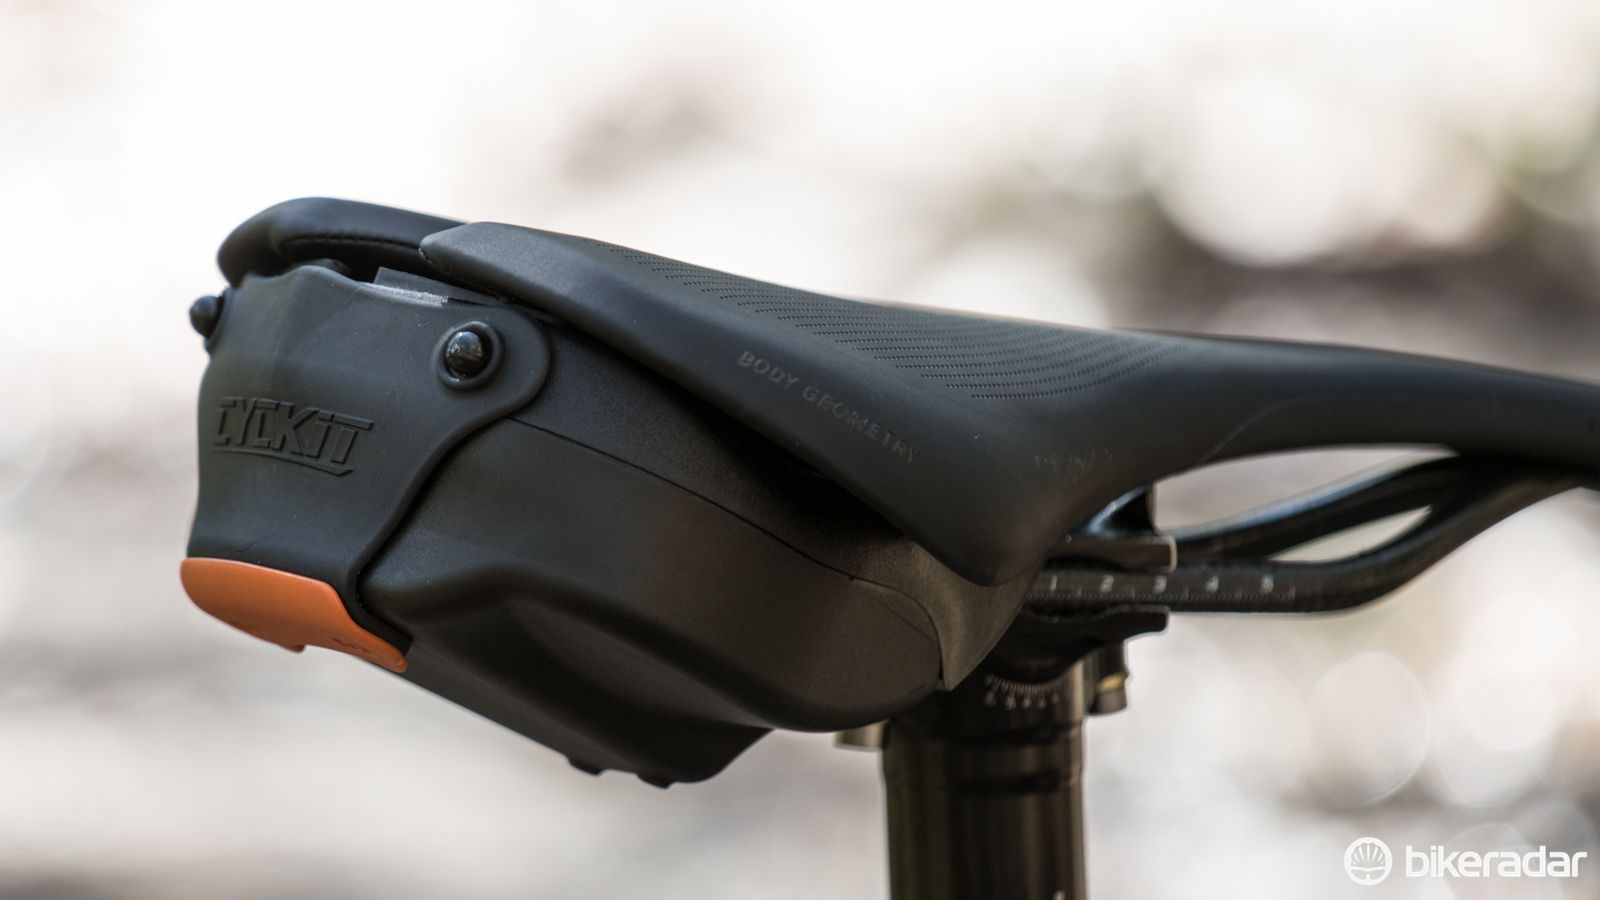 Cyckit Aeroclam Saddlebag Review Urban Bike Bike Saddle Bags